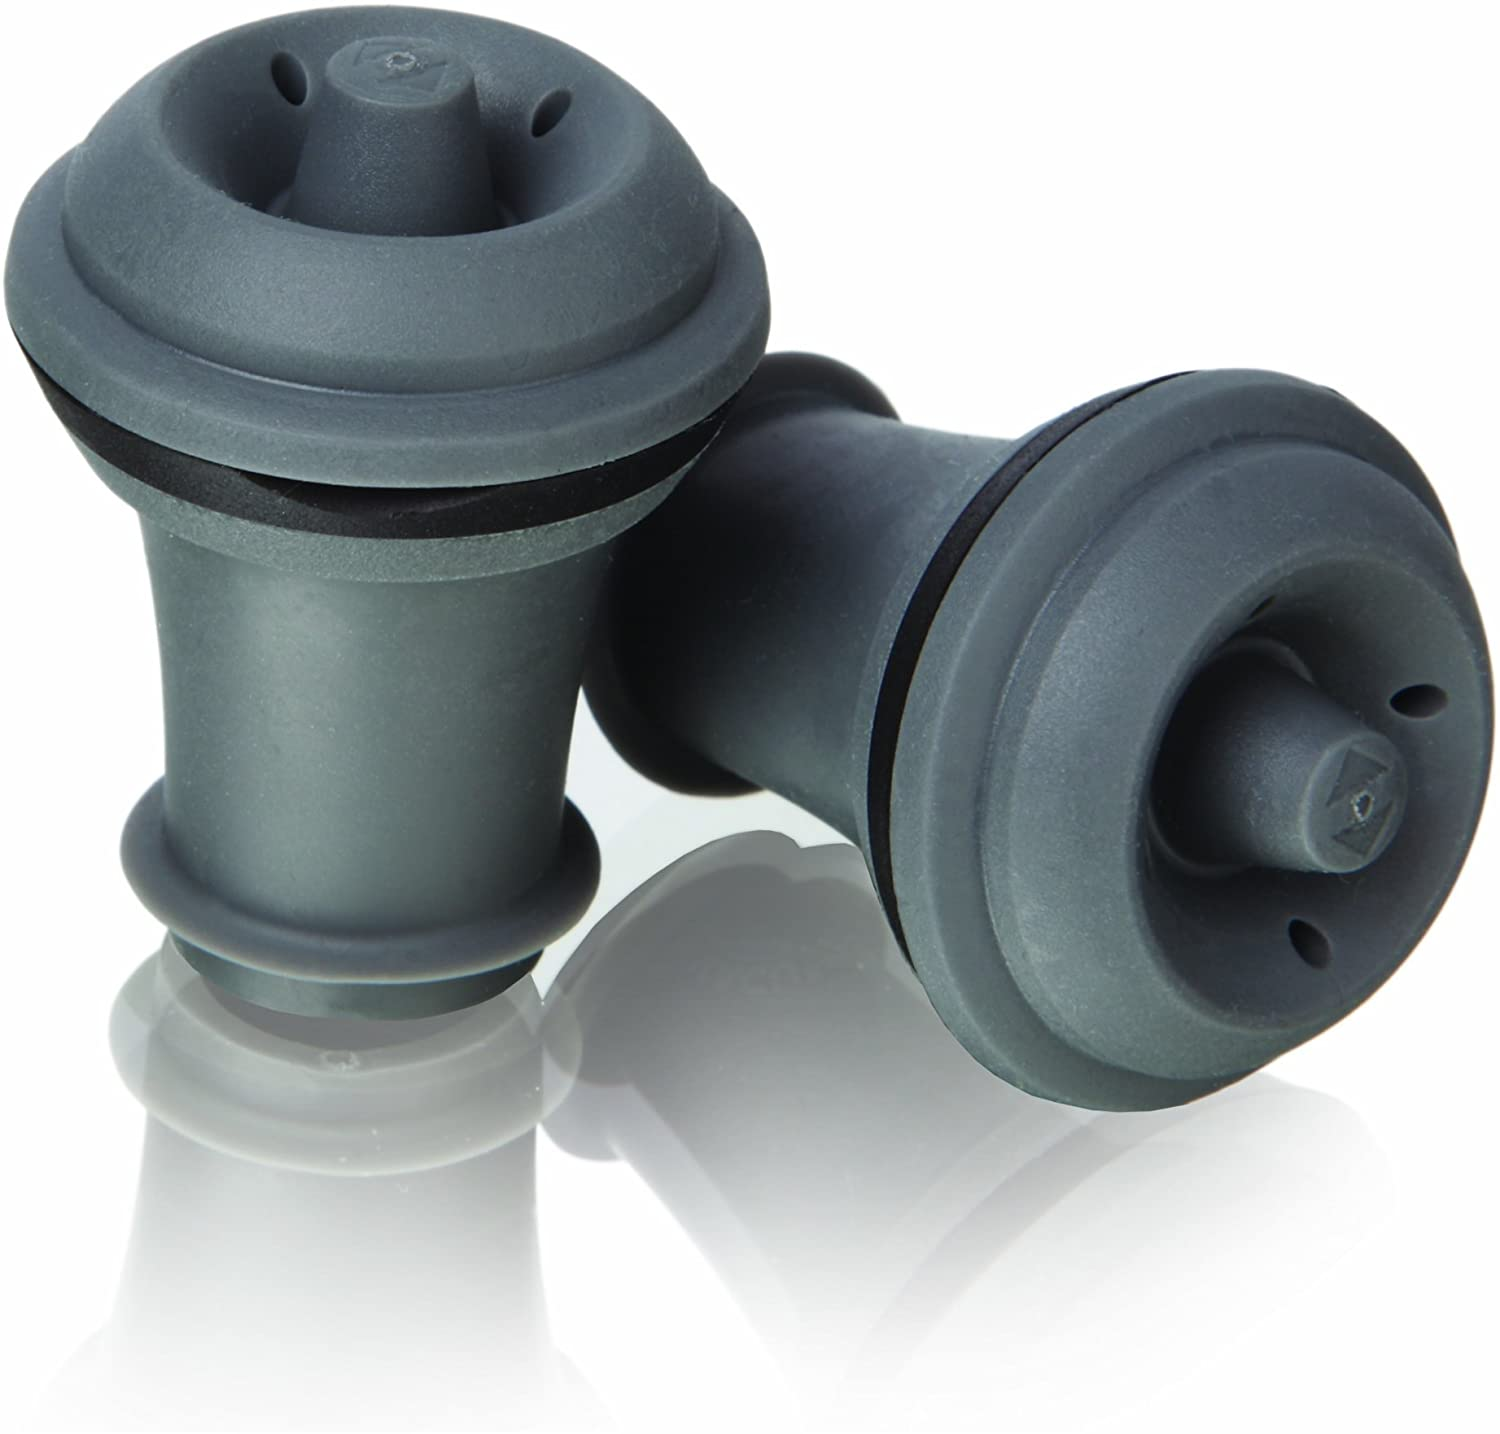 B00004SAF5 Vacu Vin Wine Saver Vacuum Stoppers Set of 2 – Grey 71p4NJOnWvL